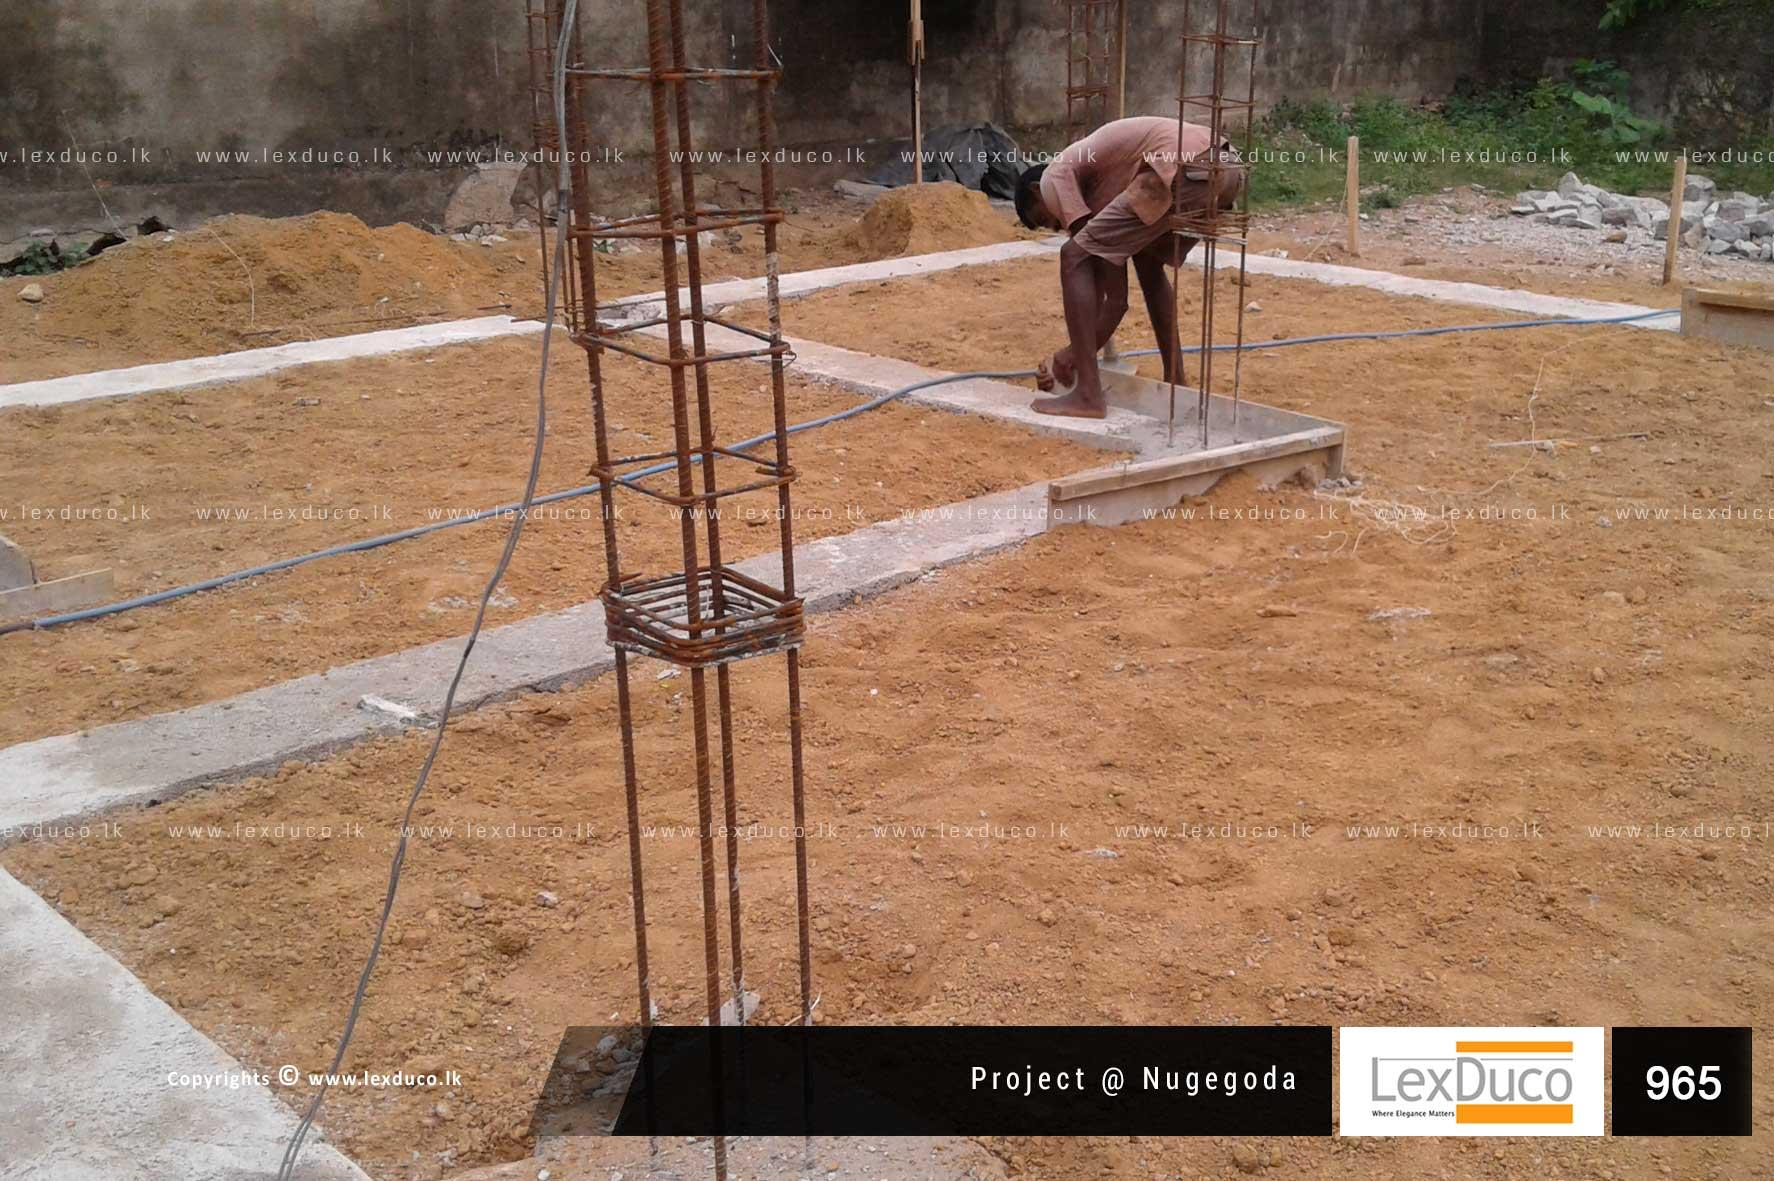 Residential Housing Project at Nugegoda   Lex Duco